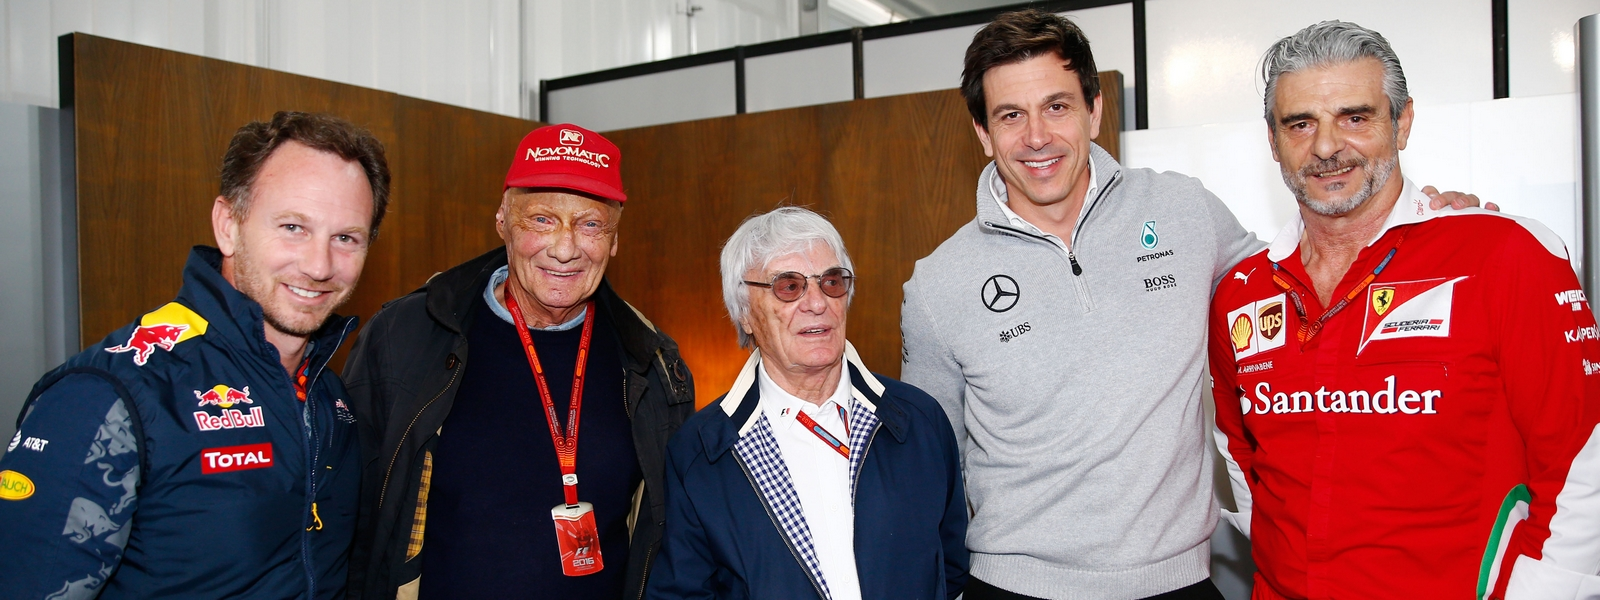 Motorsports: FIA Formula One World Championship 2016, Grand Prix of Mexico,  Christian Horner (GBR, Infiniti Red Bull Racing), Niki Lauda (AUT, Mercedes AMG Petronas Formula One Team),  Bernie Ecclestone, Toto Wolff (AUT, Mercedes AMG Petronas Formula One Team),  Mauricio Arrivabene *** Local Caption *** +++ www.hoch-zwei.net +++ copyright: HOCH ZWEI +++